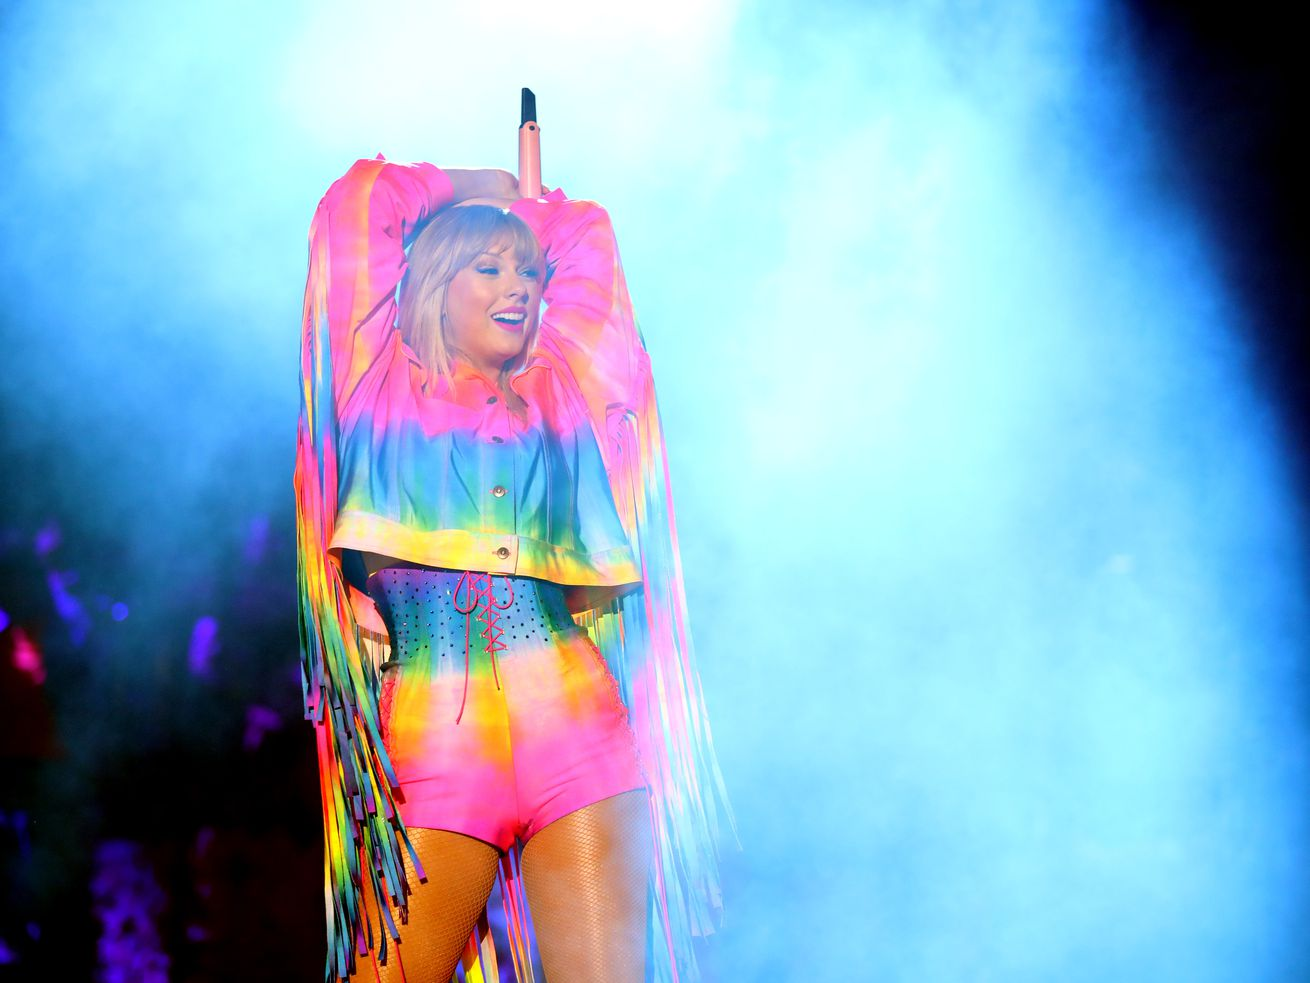 Taylor Swift performs onstage at an iHeartRadio concert in Carson, California,